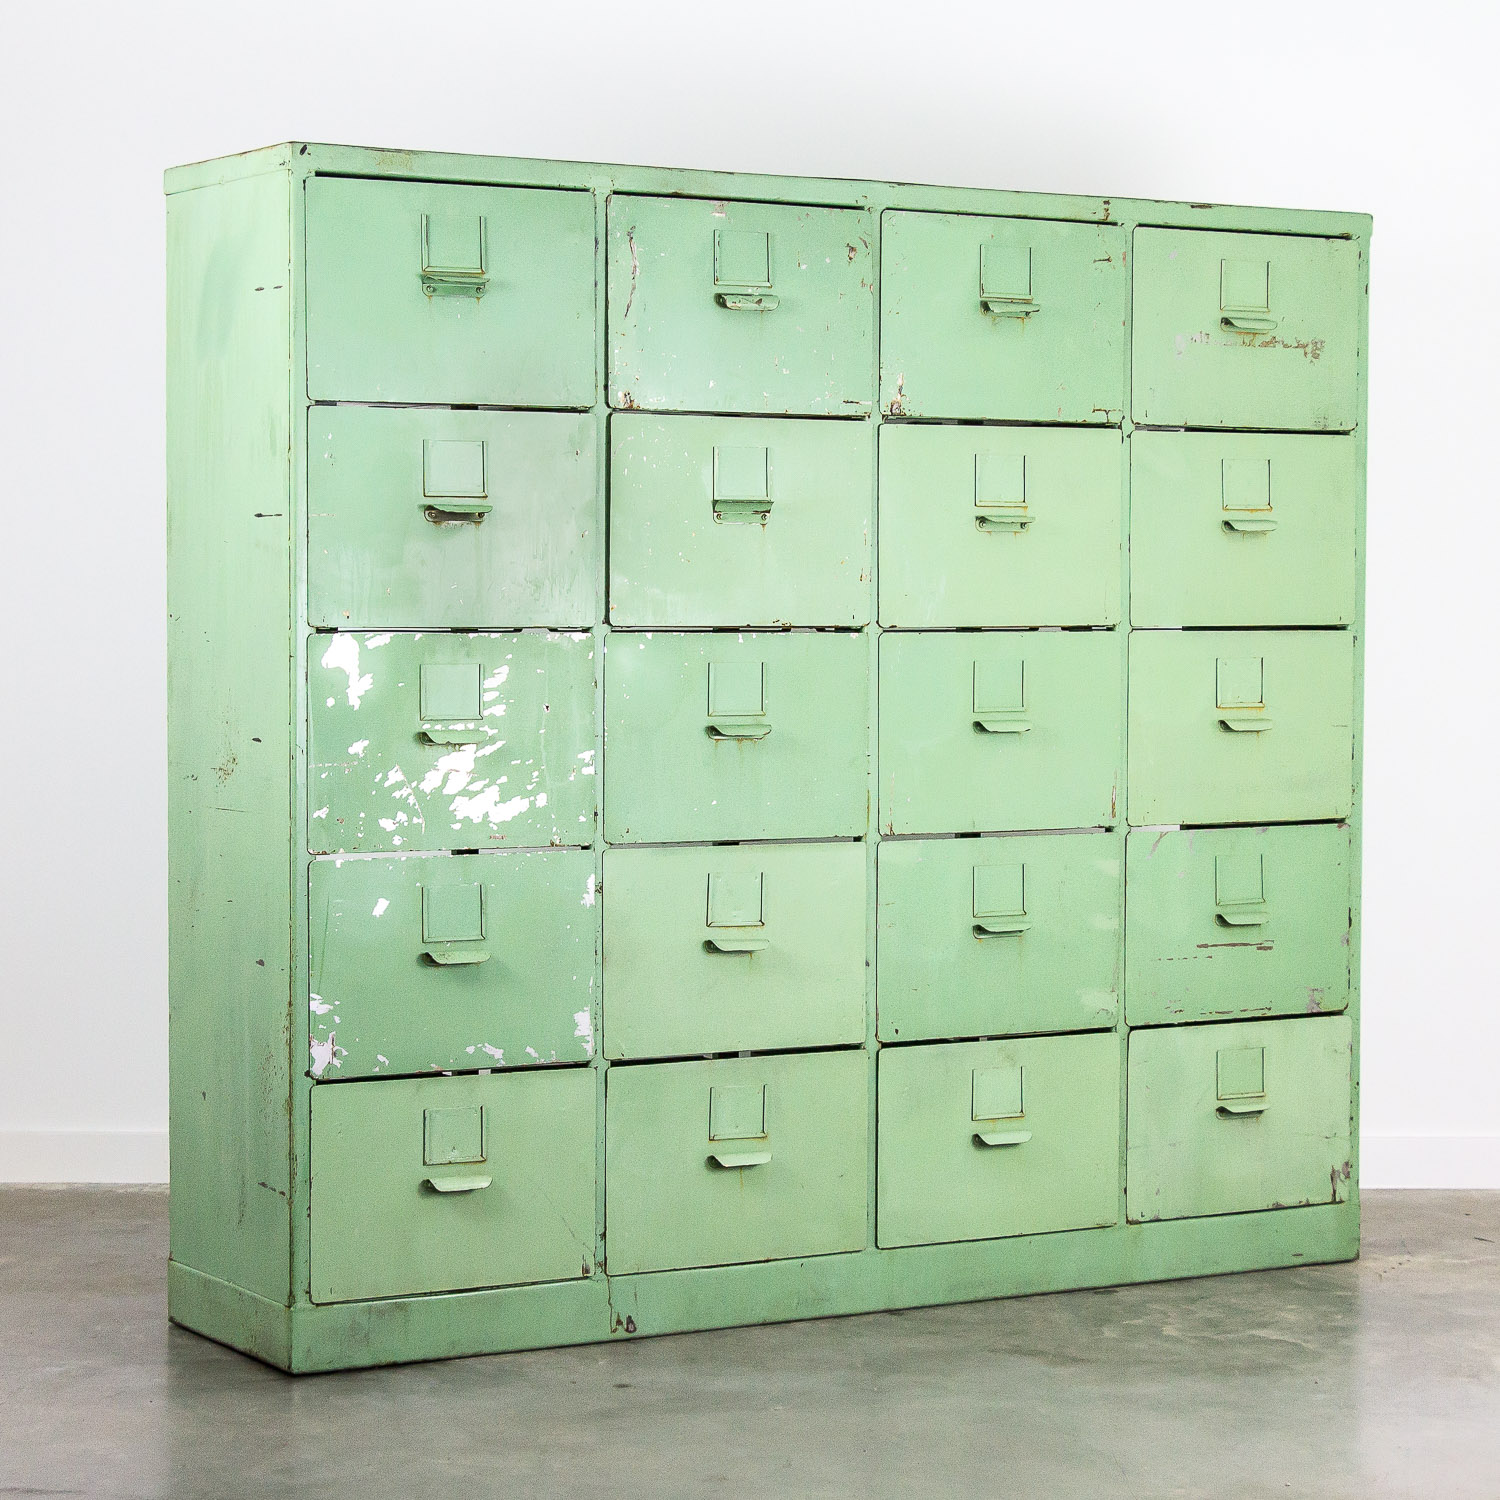 Big metal chest of drawers